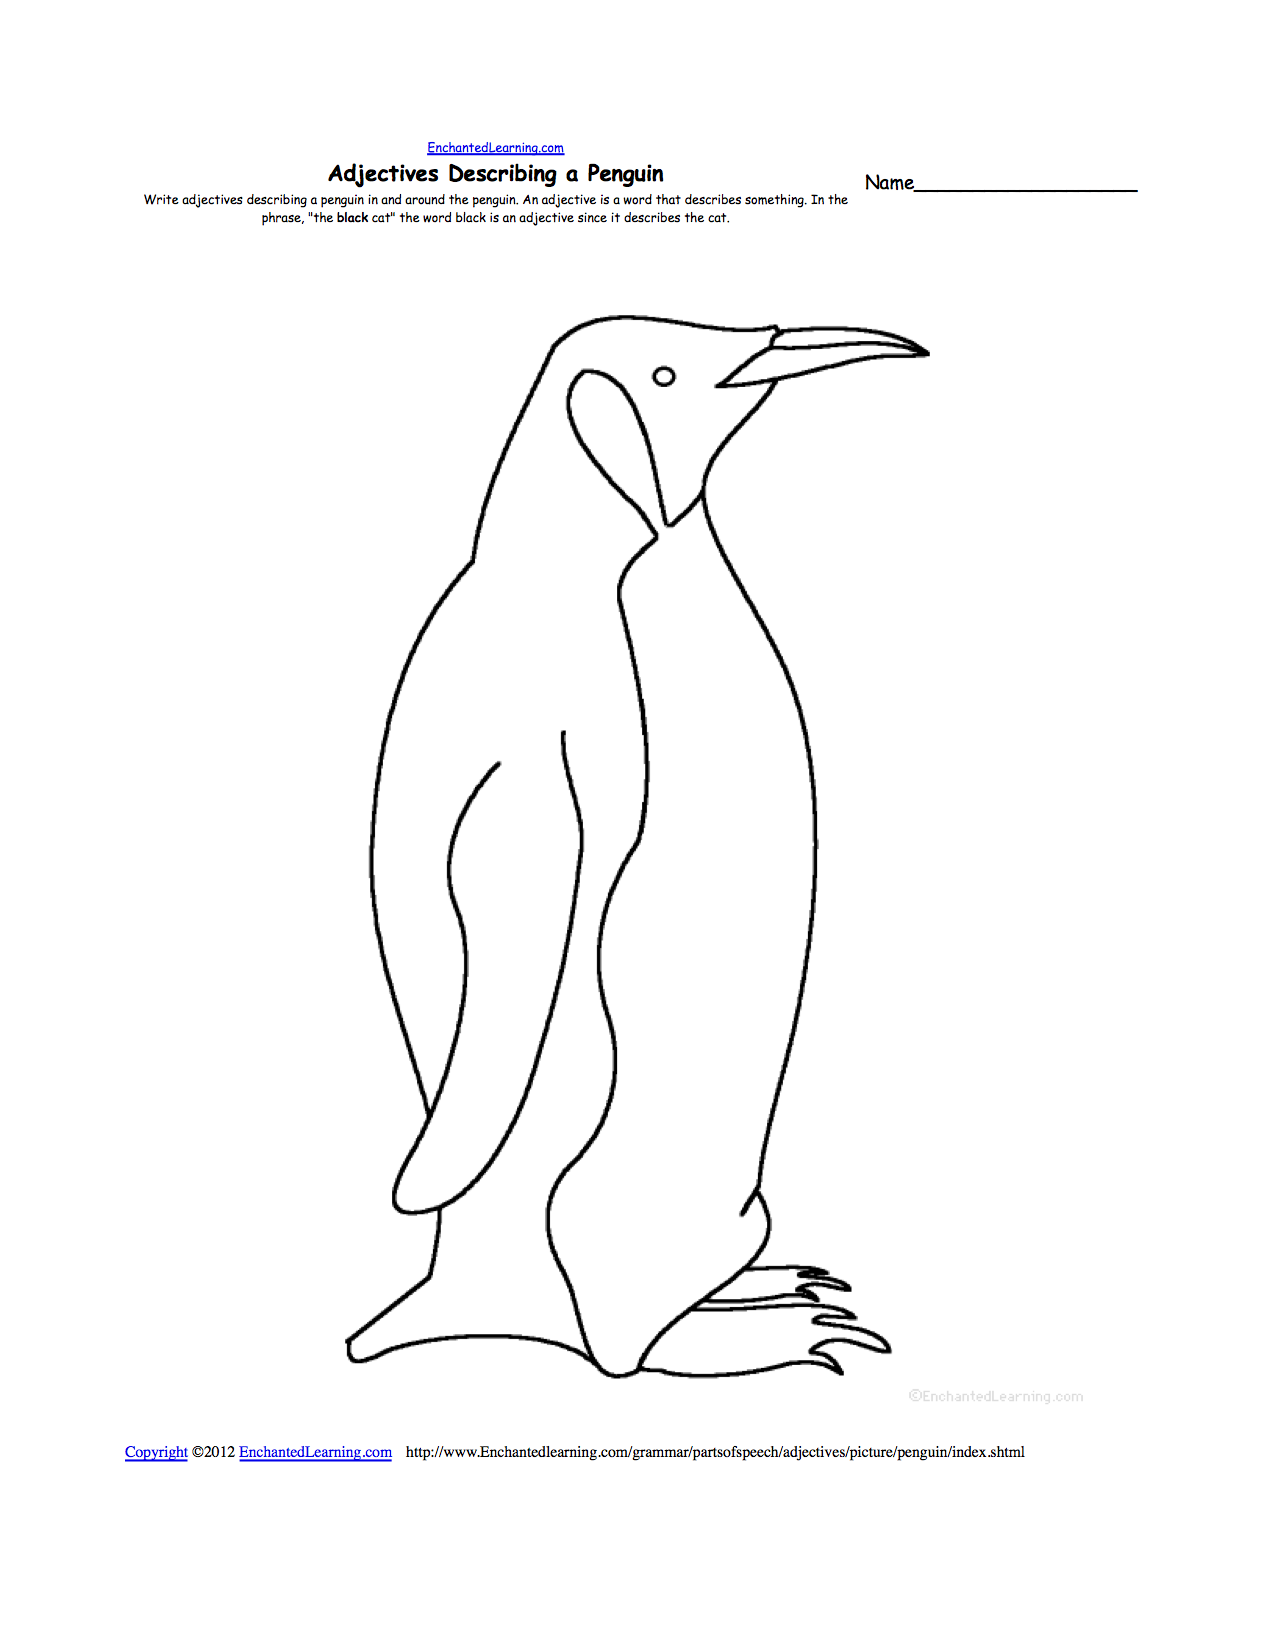 essay on penguins essay on penguins need help writing history  penguins at com adjectives describing a penguin